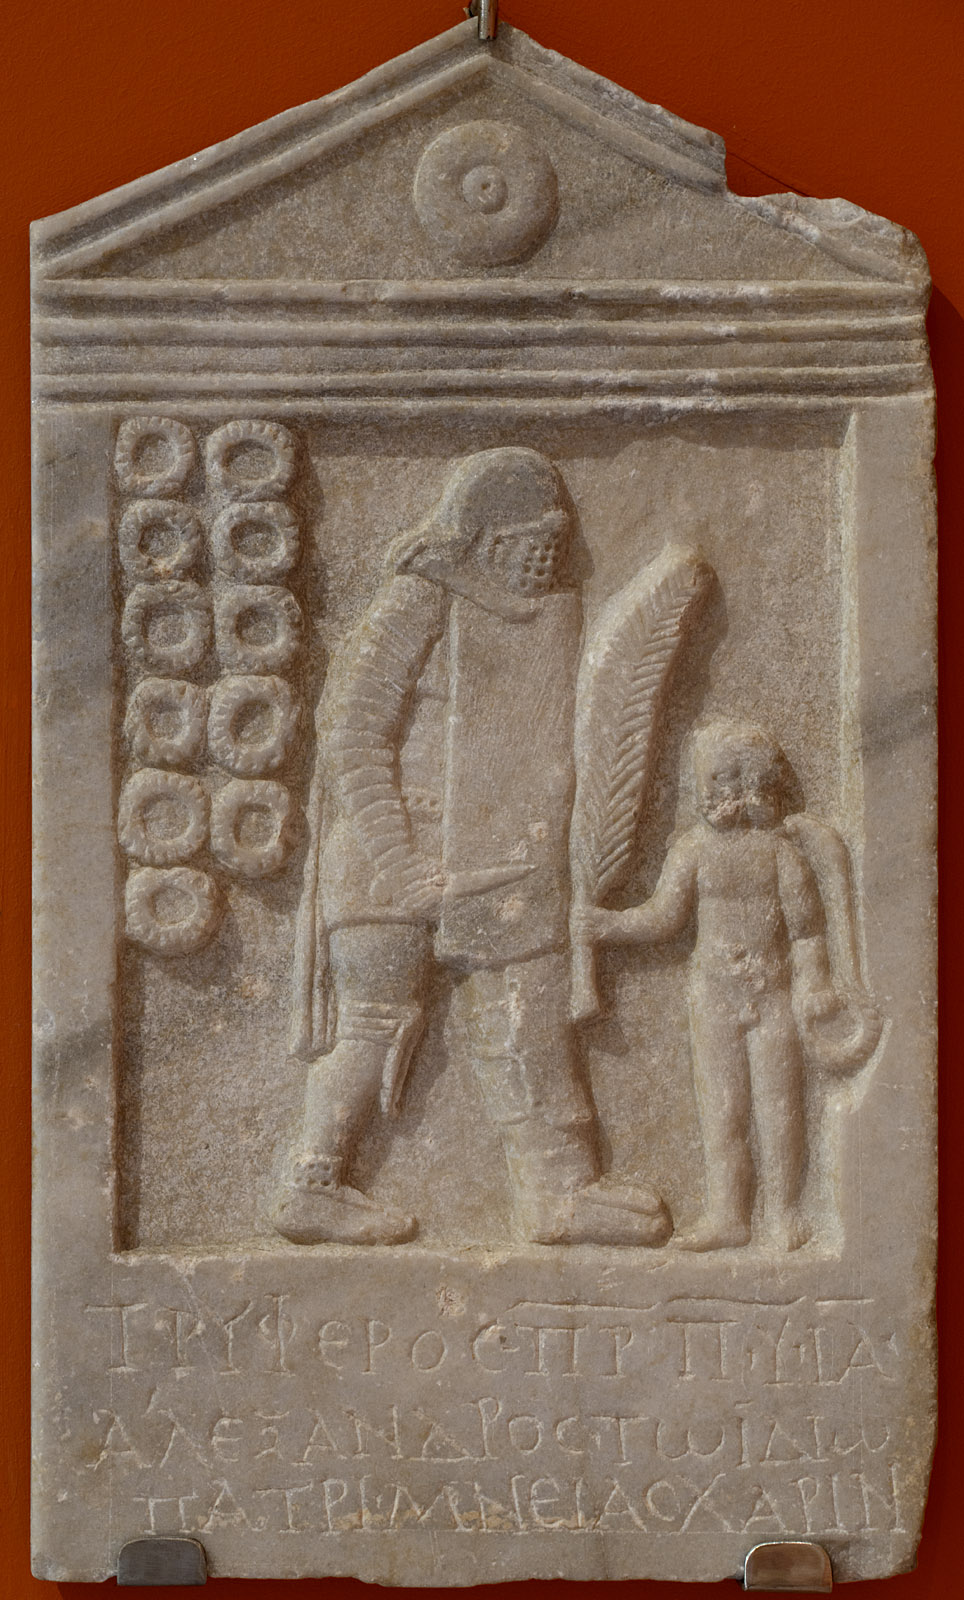 Grave stele of gladiator Trypheros. Marble. Patras. 2nd—3rd centuries CE. Inv. No. 191. Patras, New Archaeological Museum